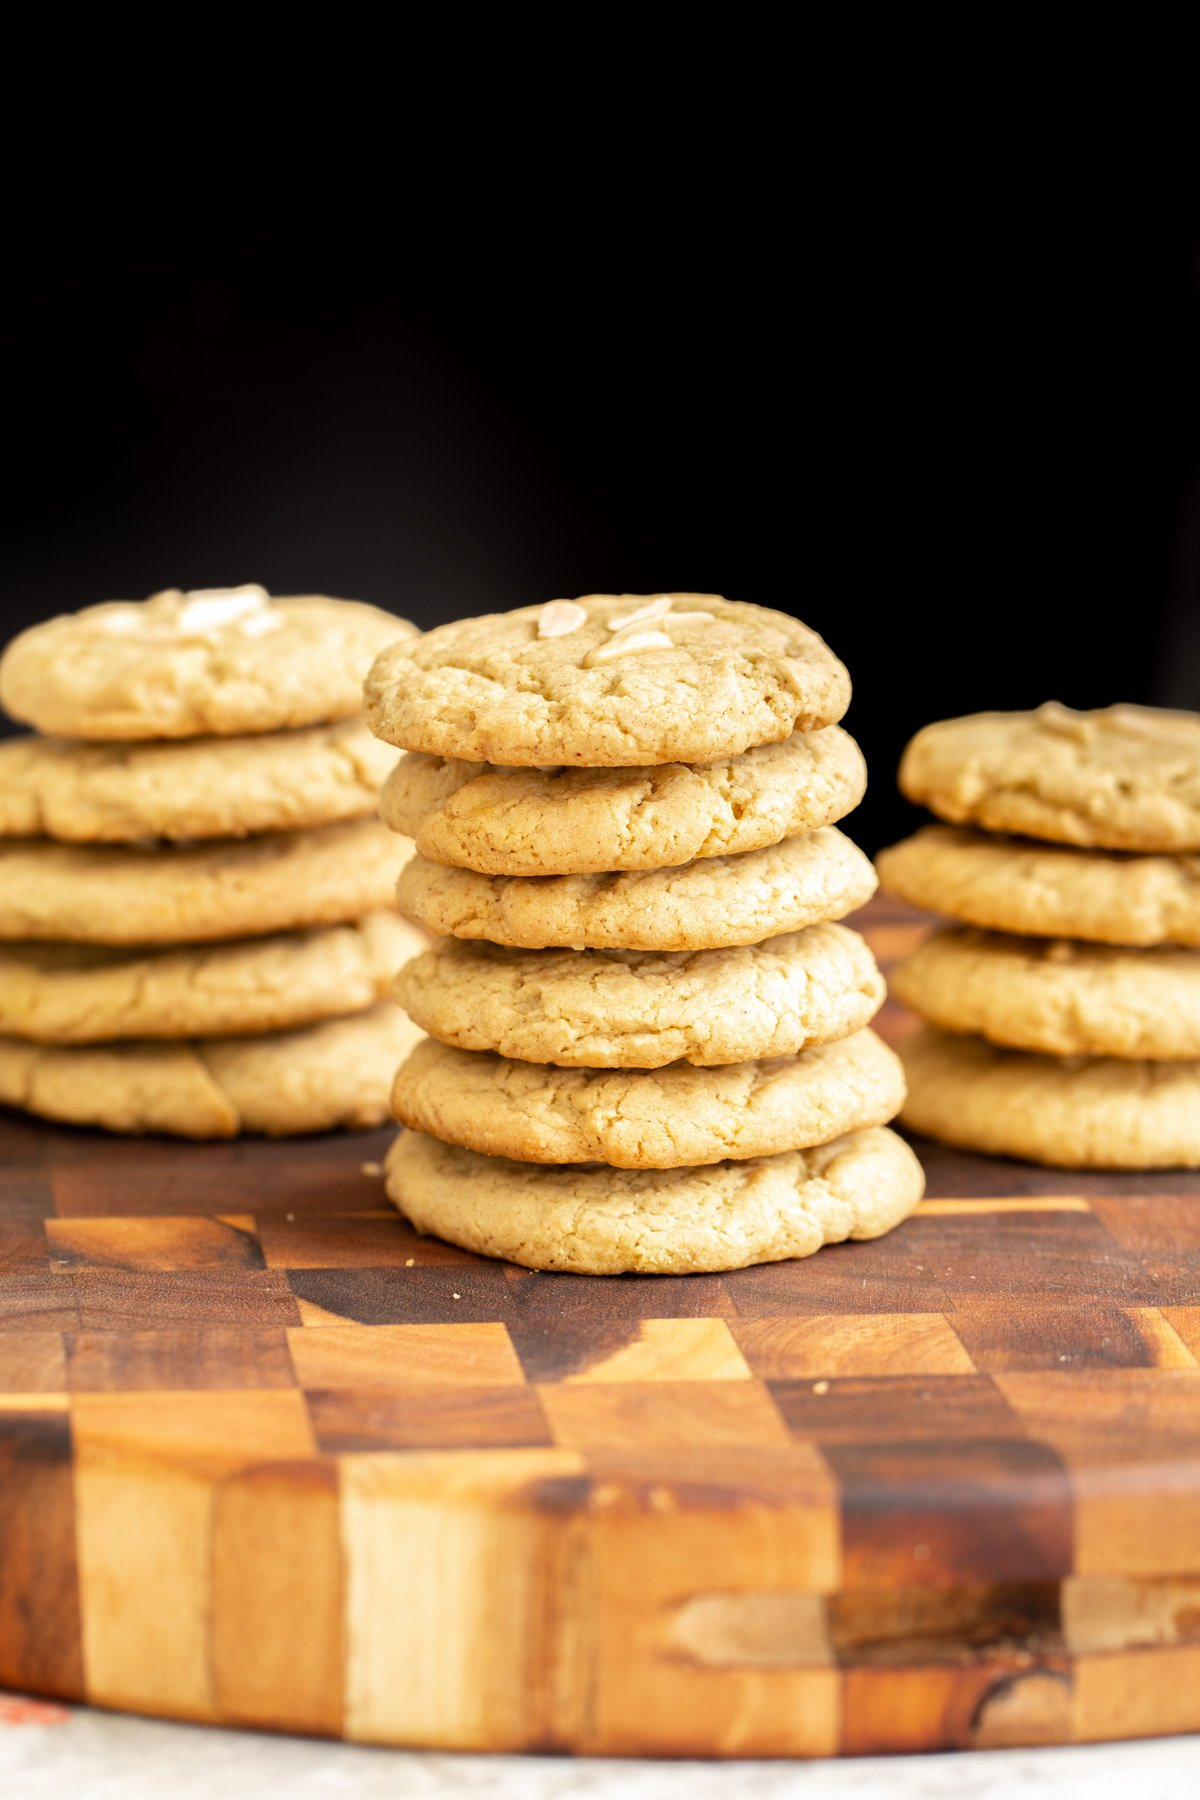 stacked vegan almond flour pistachio cookies topped with slivered almonds on a wooden chopping board